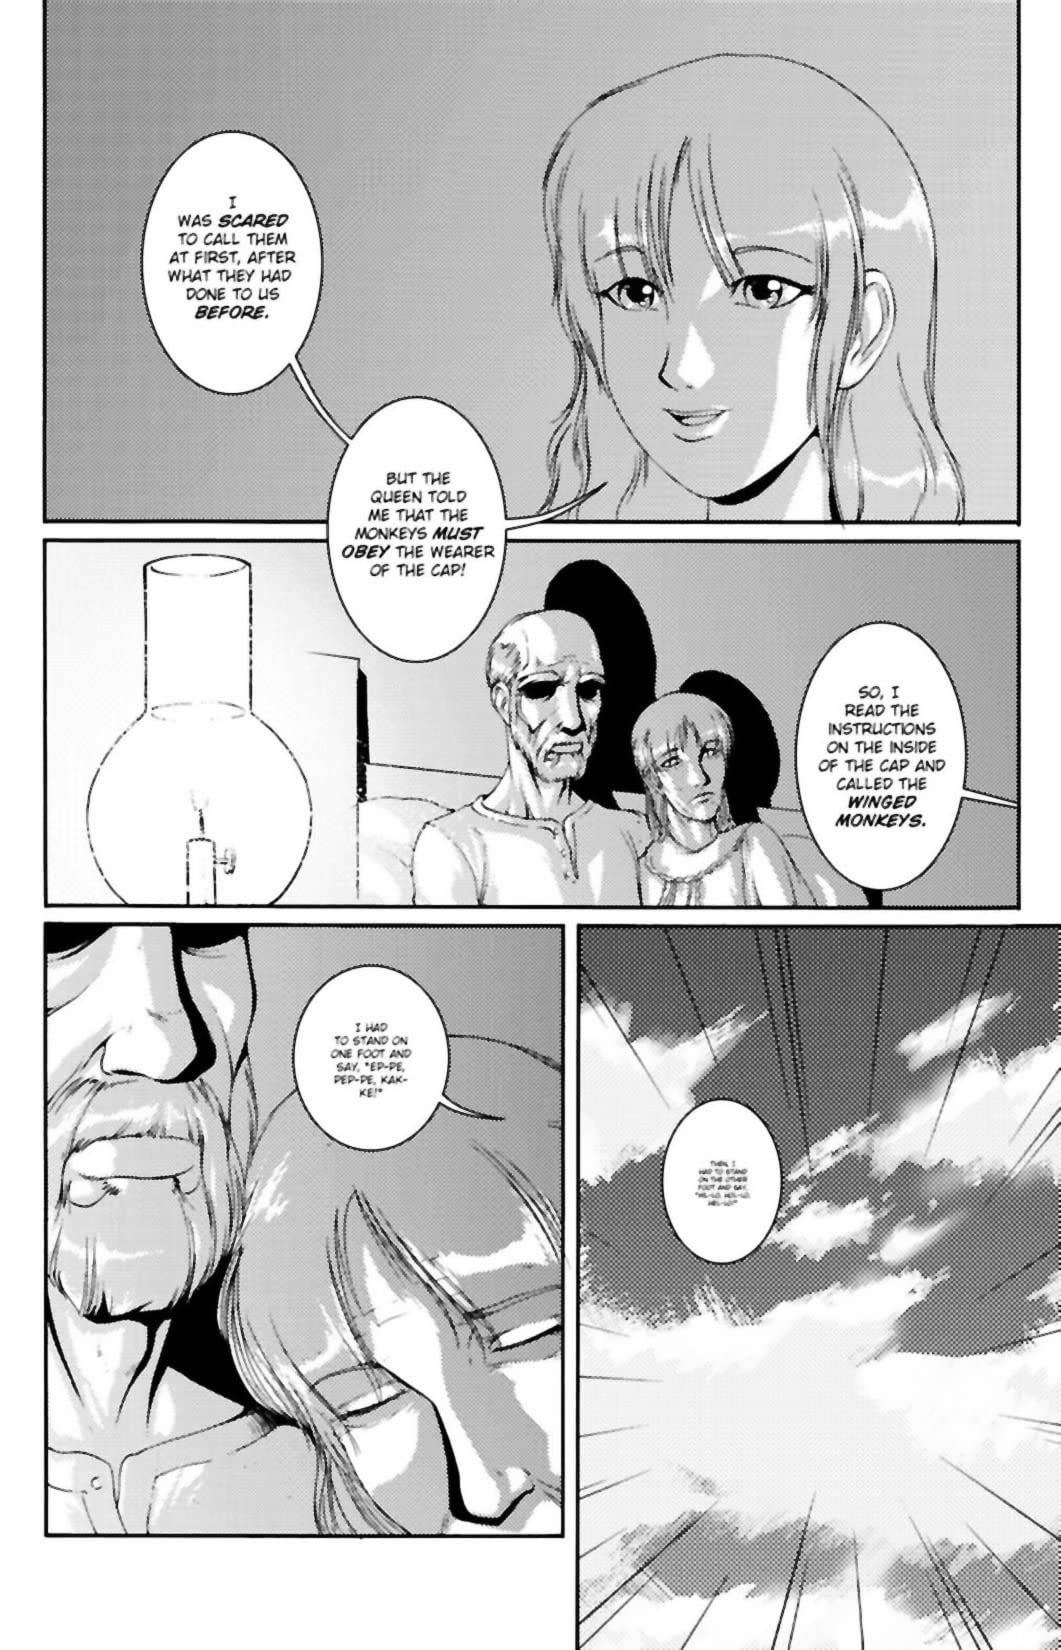 Oz: The Manga Epilogue